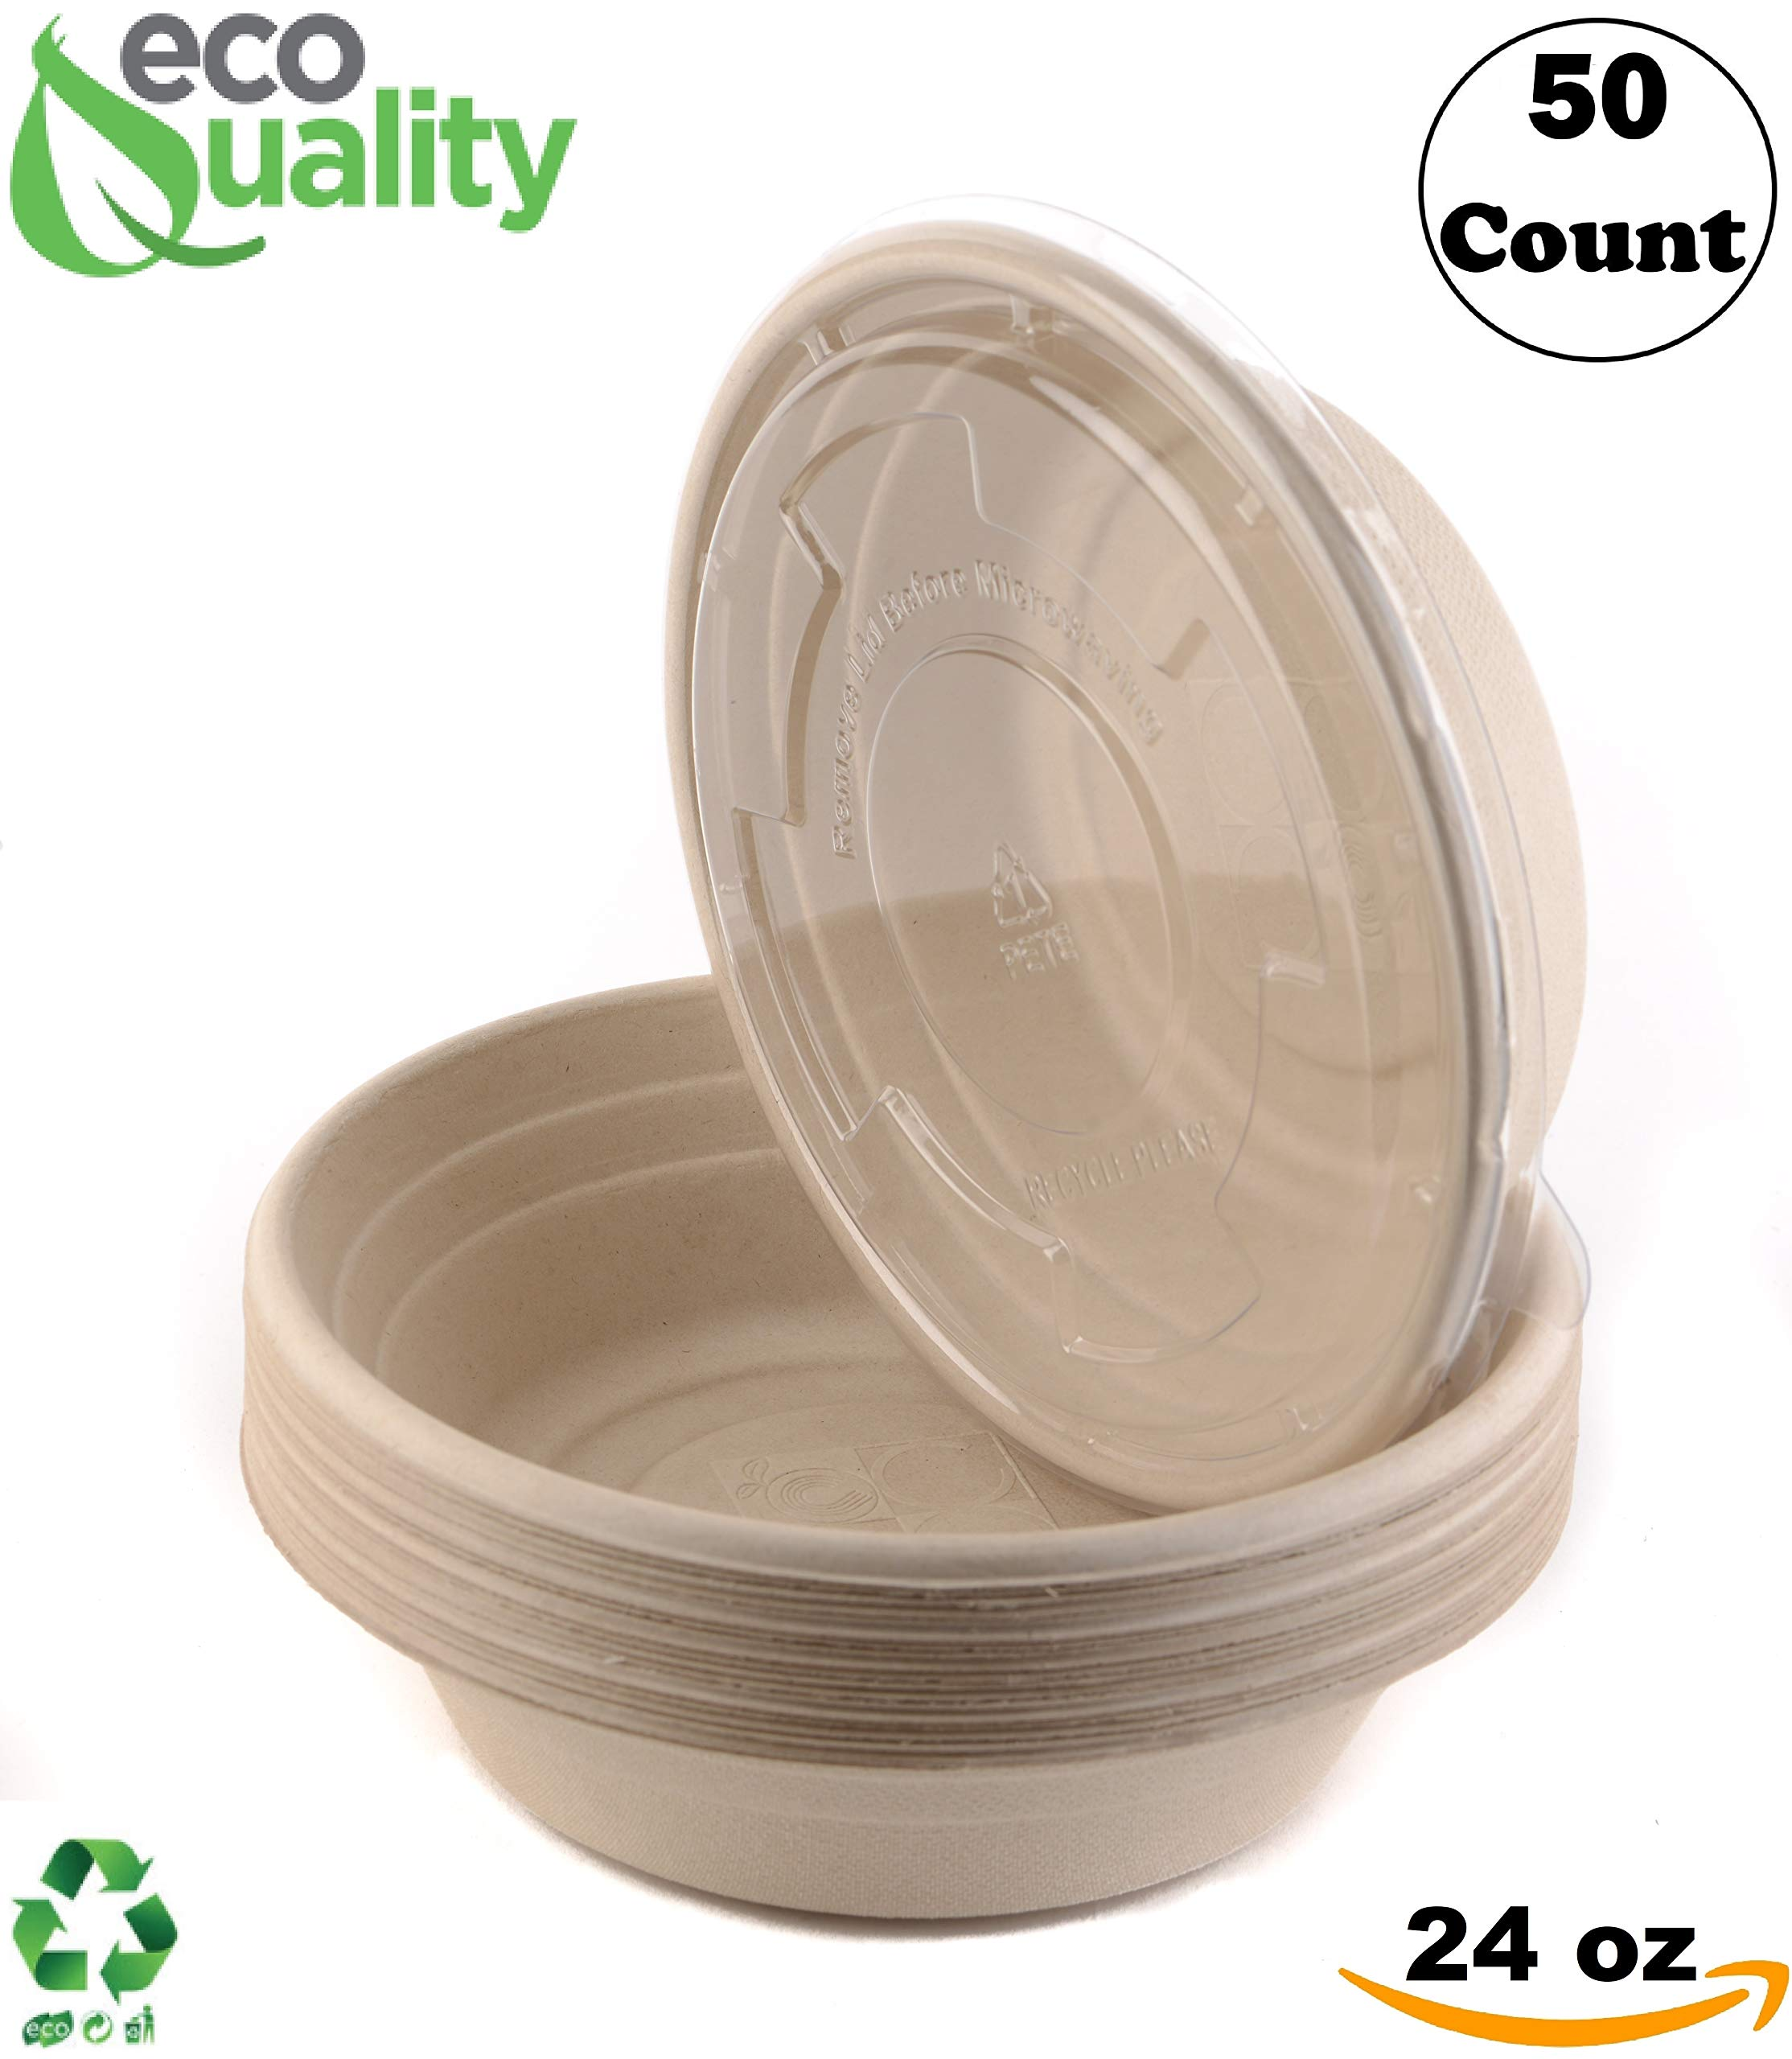 50 Count - EcoQuality 24oz Round Disposable Bowls with Lids Natural Sugarcane Bagasse Bamboo Fibers Sturdy Compostable Eco Friendly Environmental Paper Plastic Bowl Alternative Tree Free